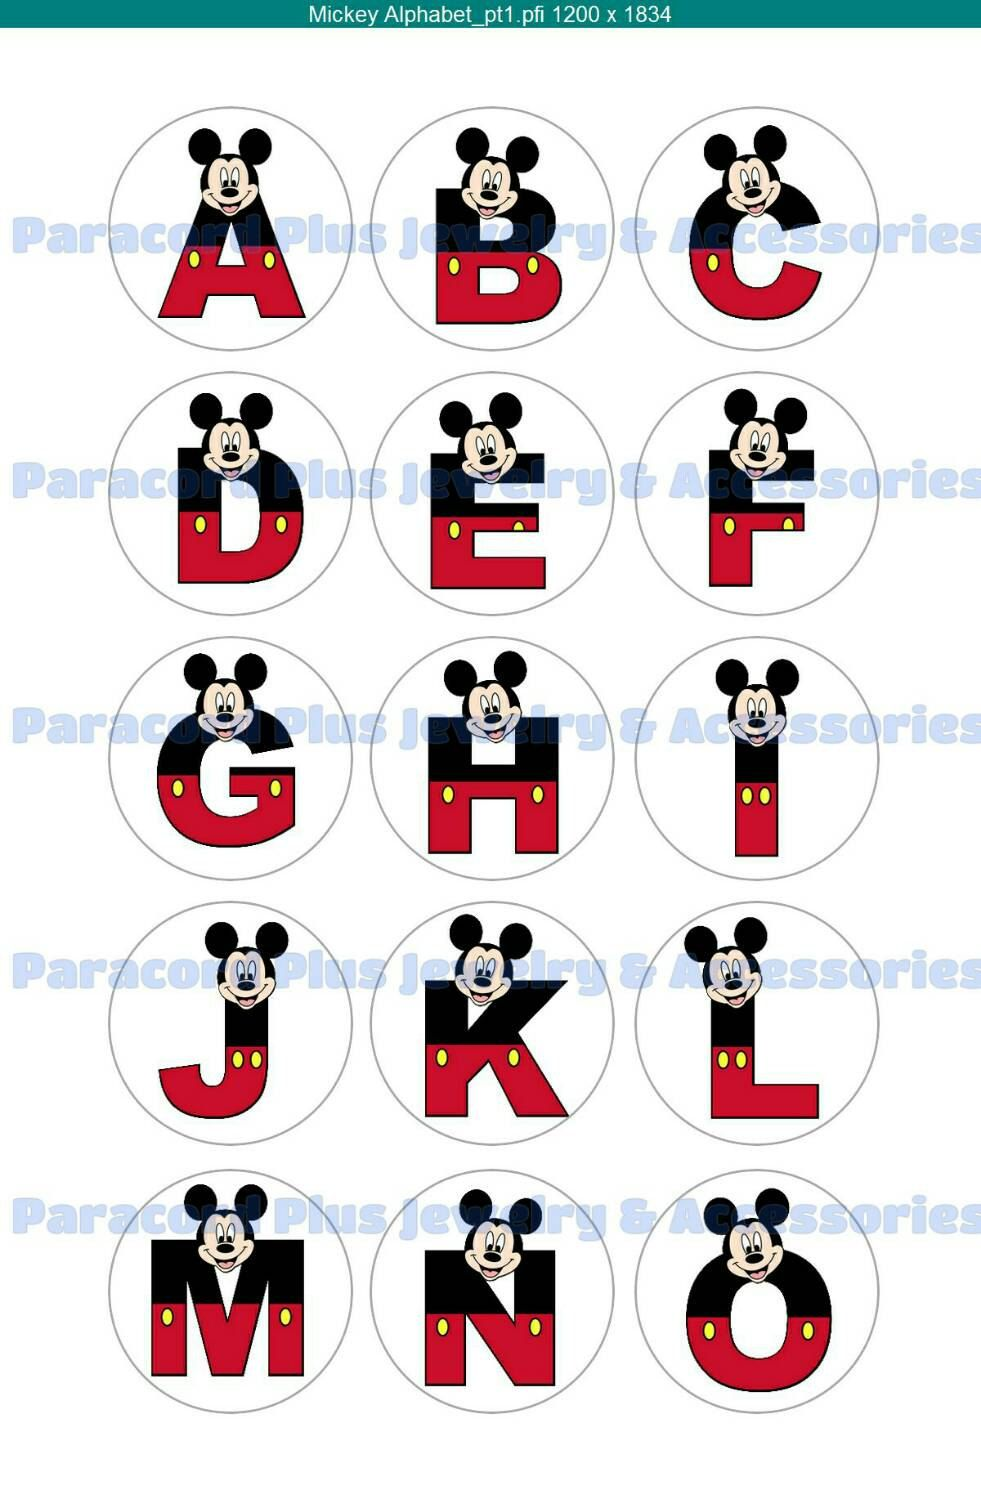 Mickey mouse bottle cap alphabet collage sheet capital letters mickey mouse bottle cap alphabet collage sheet capital letters digital file instant download biocorpaavc